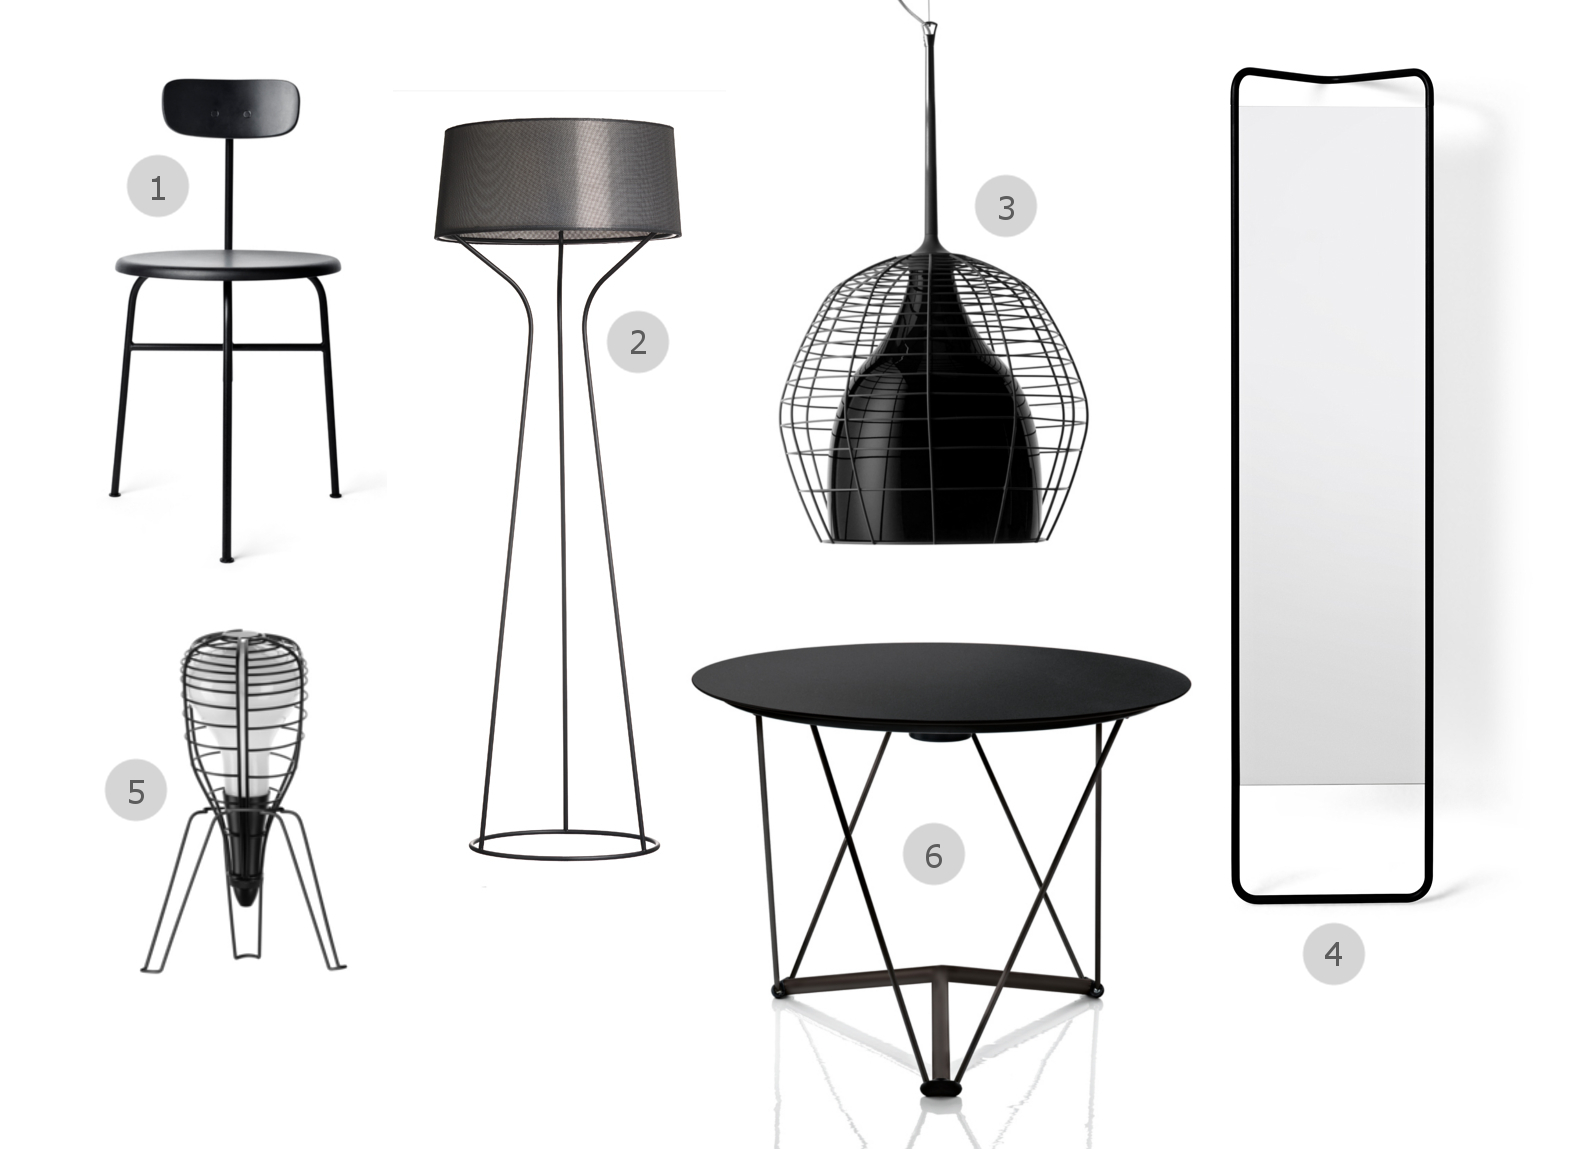 1. Menu Afteroom Chair 2. Orsjo Aria Floor Lamp 3. Diesel with Foscarini Cage Suspension Light Large 4. Menu Kaschkasch Floor Mirror 5. Diesel with Foscarini Cage Rocket Table Lamp 6. Magis Lem Round Table